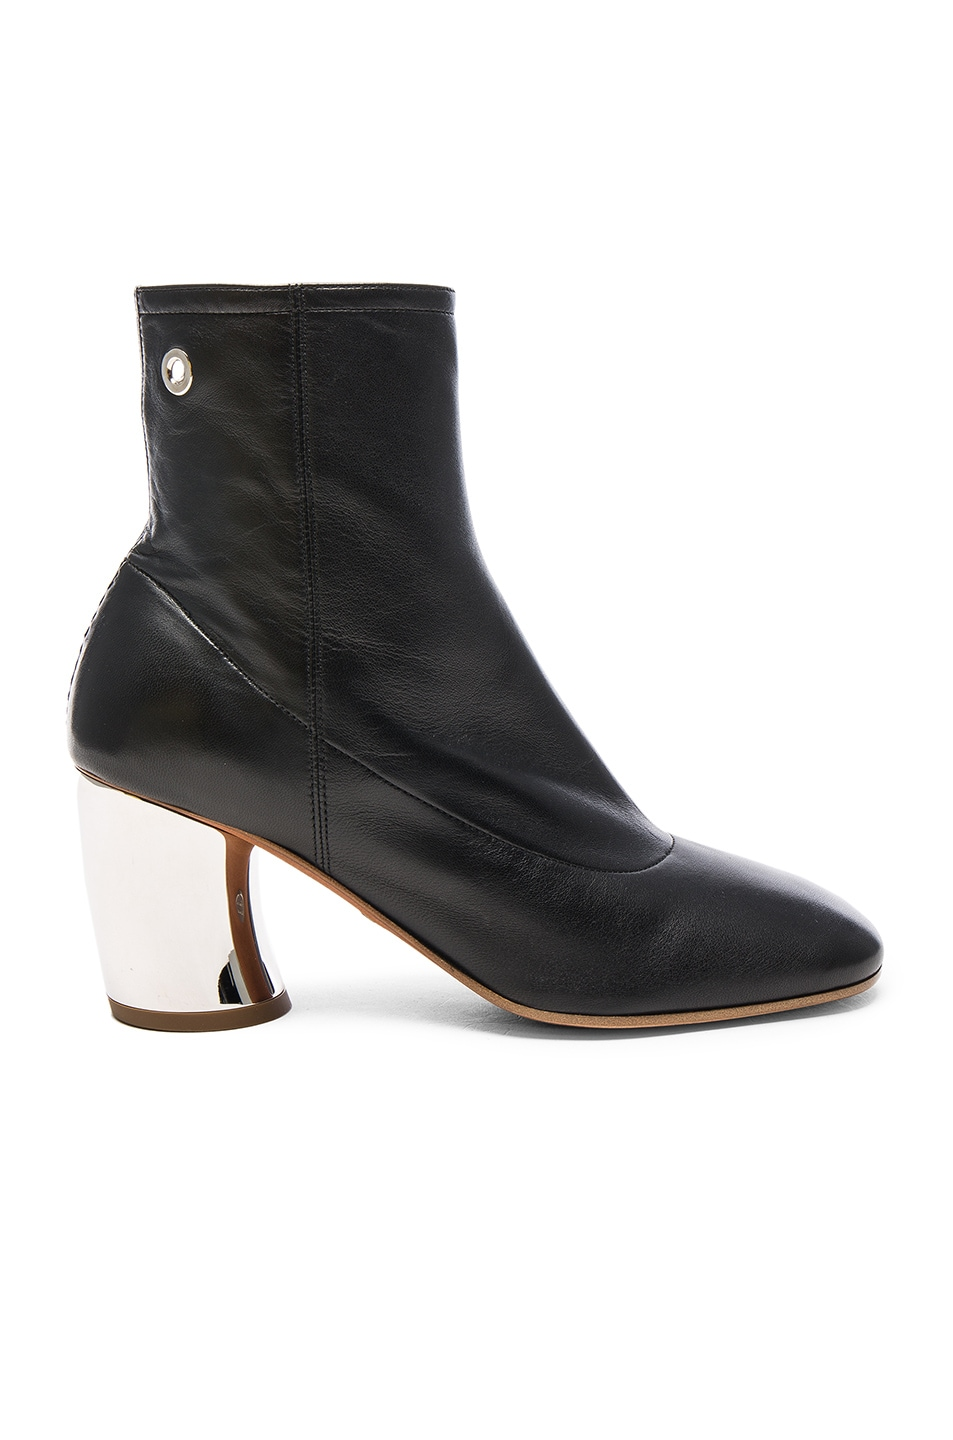 Image 1 of Proenza Schouler Leather Booties in Black